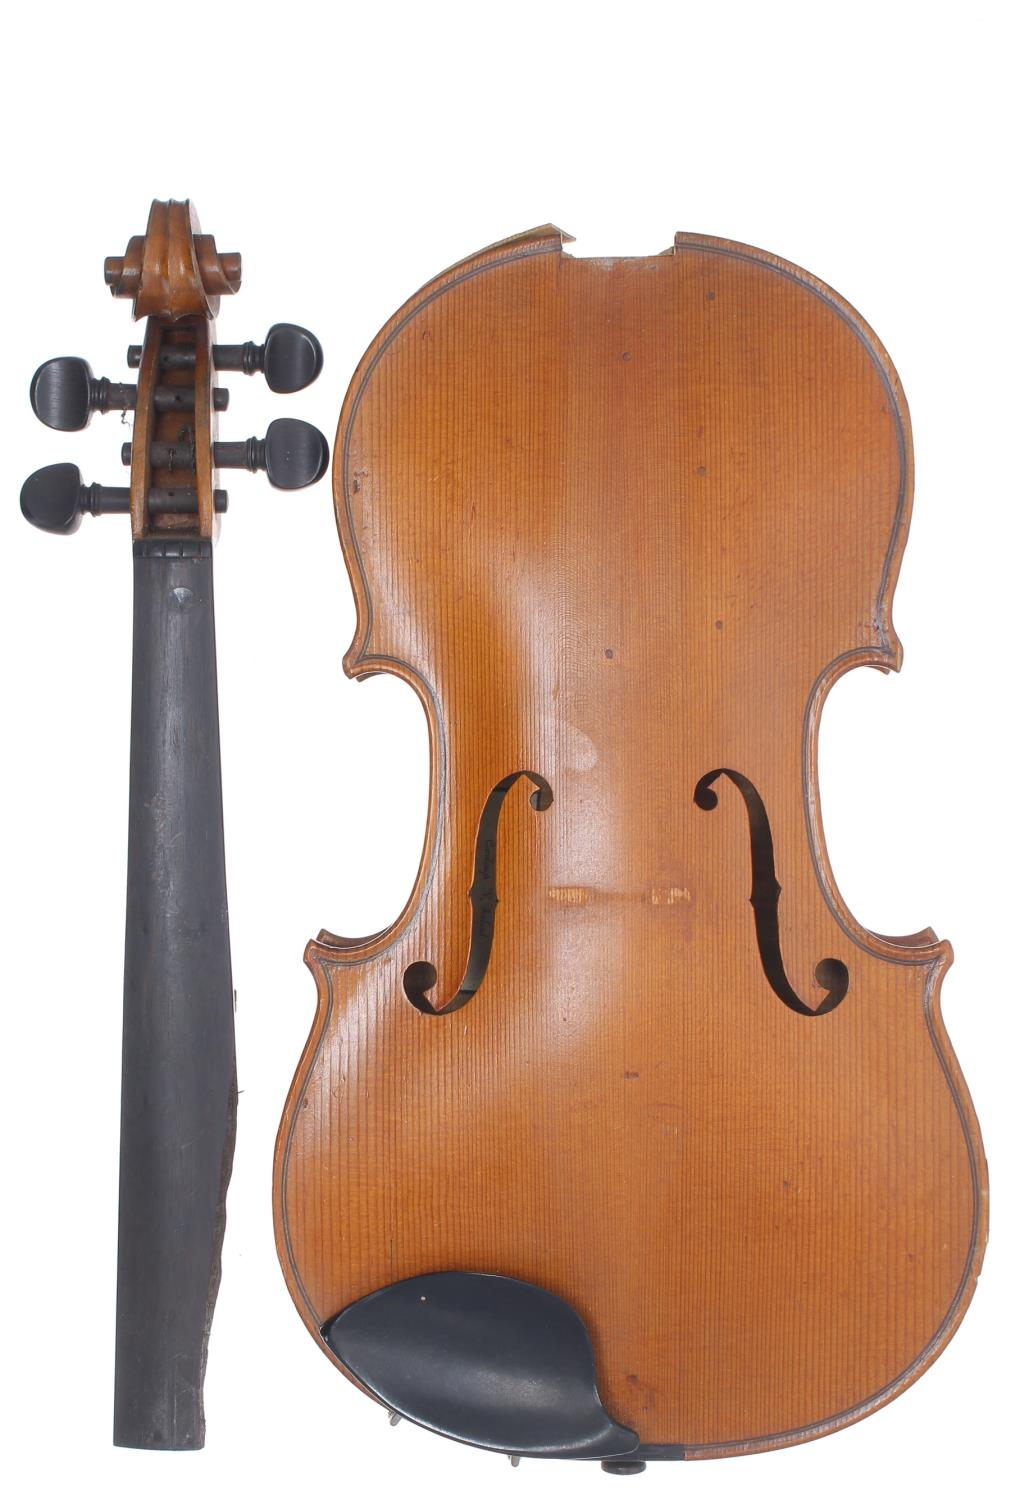 Early 20th century violin in need of restoration, case